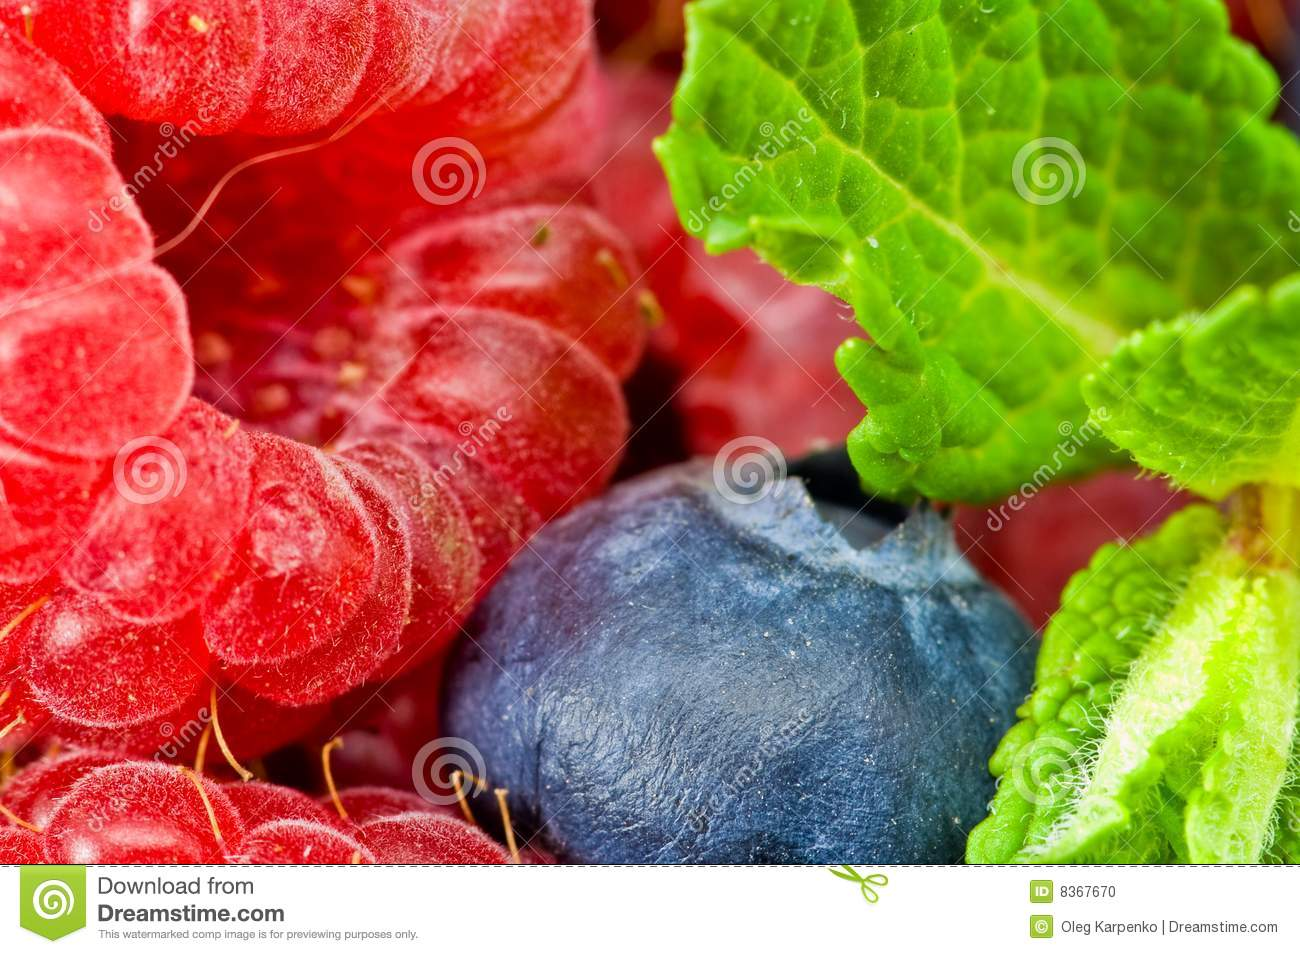 Blueberry And Raspberry With Mint Leaves Stock Photo - Image: 8367670